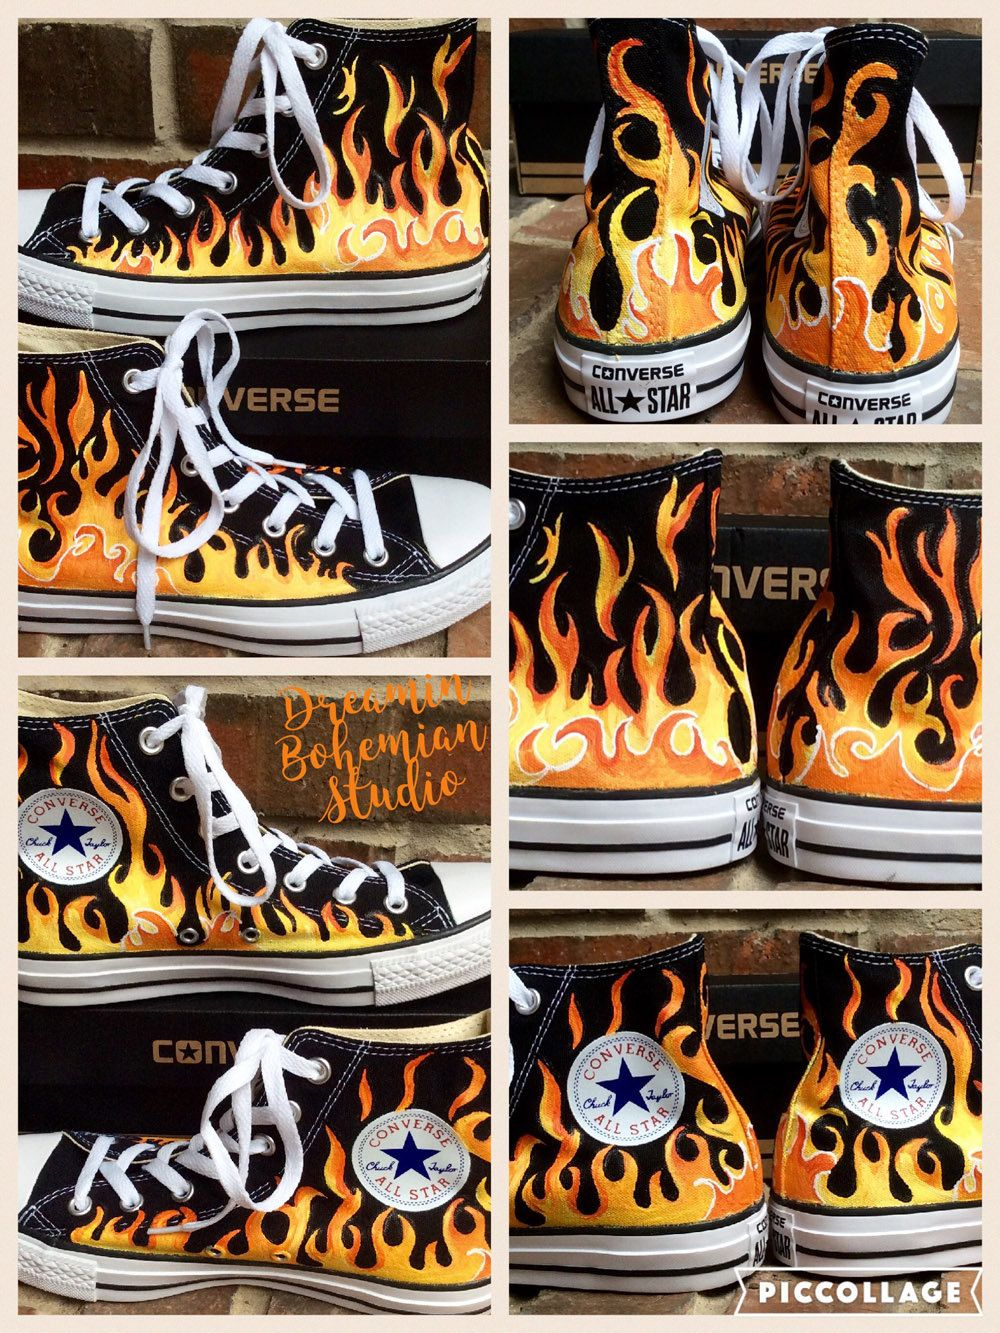 Custom Hand Painted Fire Flames on Black Chuck Taylor Converse Hi Top  Tennis Shoes for Adult by dreaminbohemian on Etsy f6d5033ba9